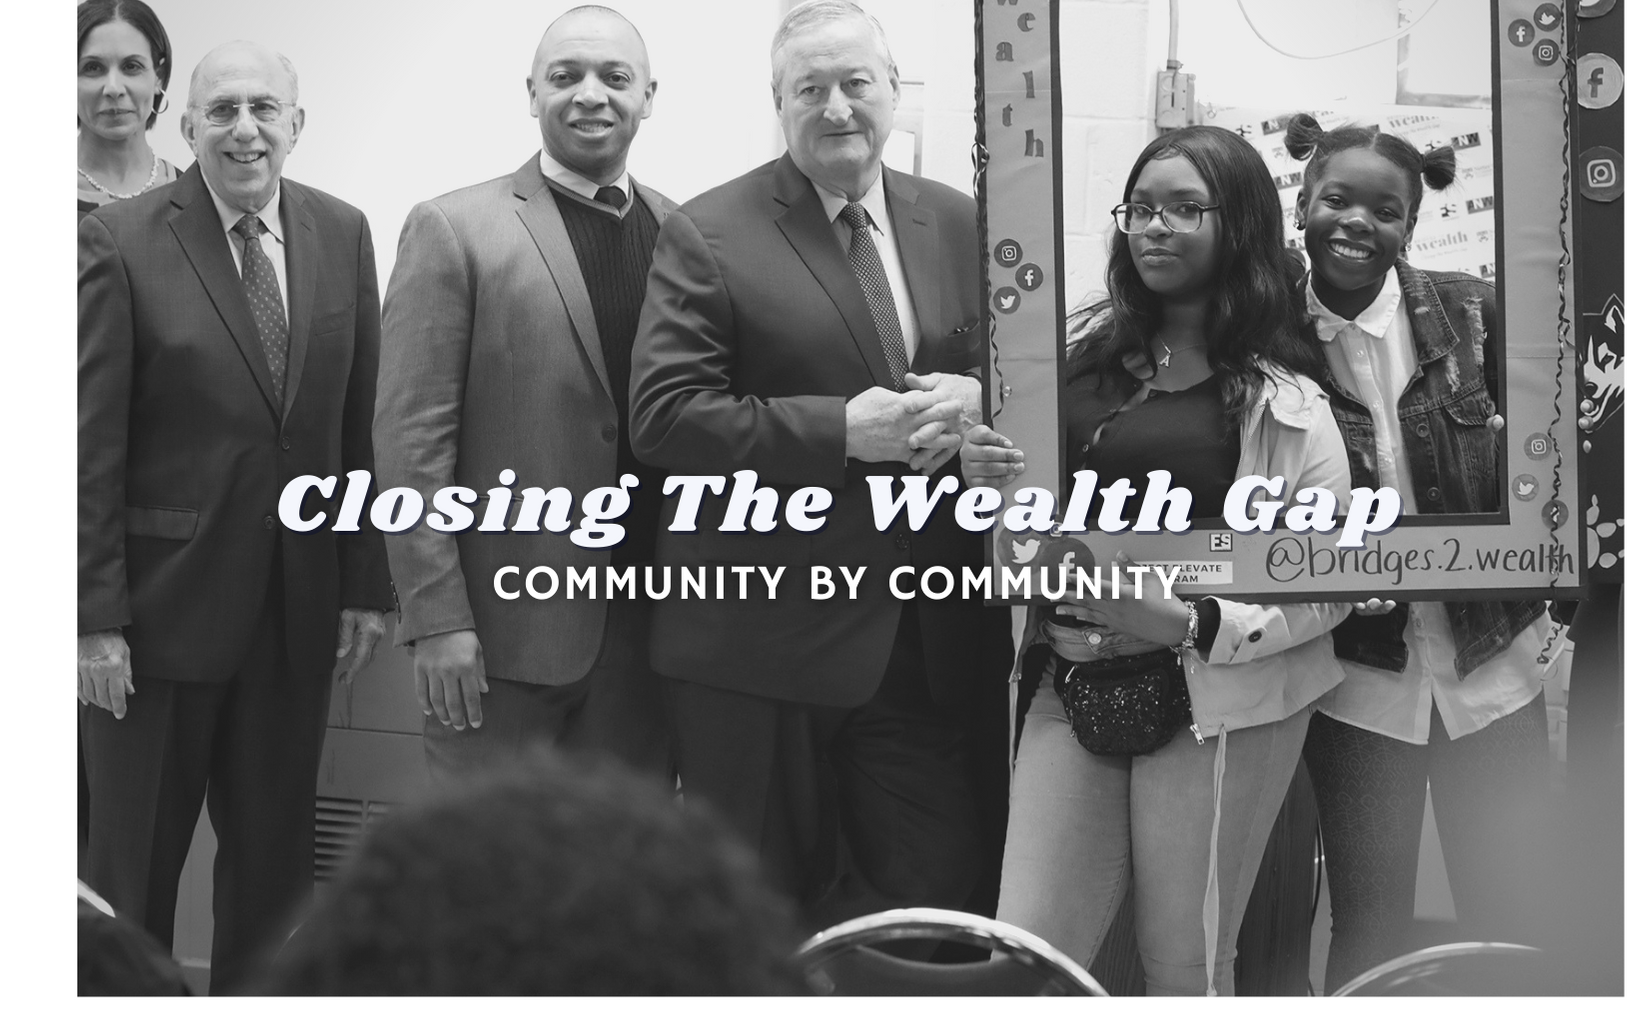 A black and white image of high school students receiving a grant award through the Bridges to Wealth program.